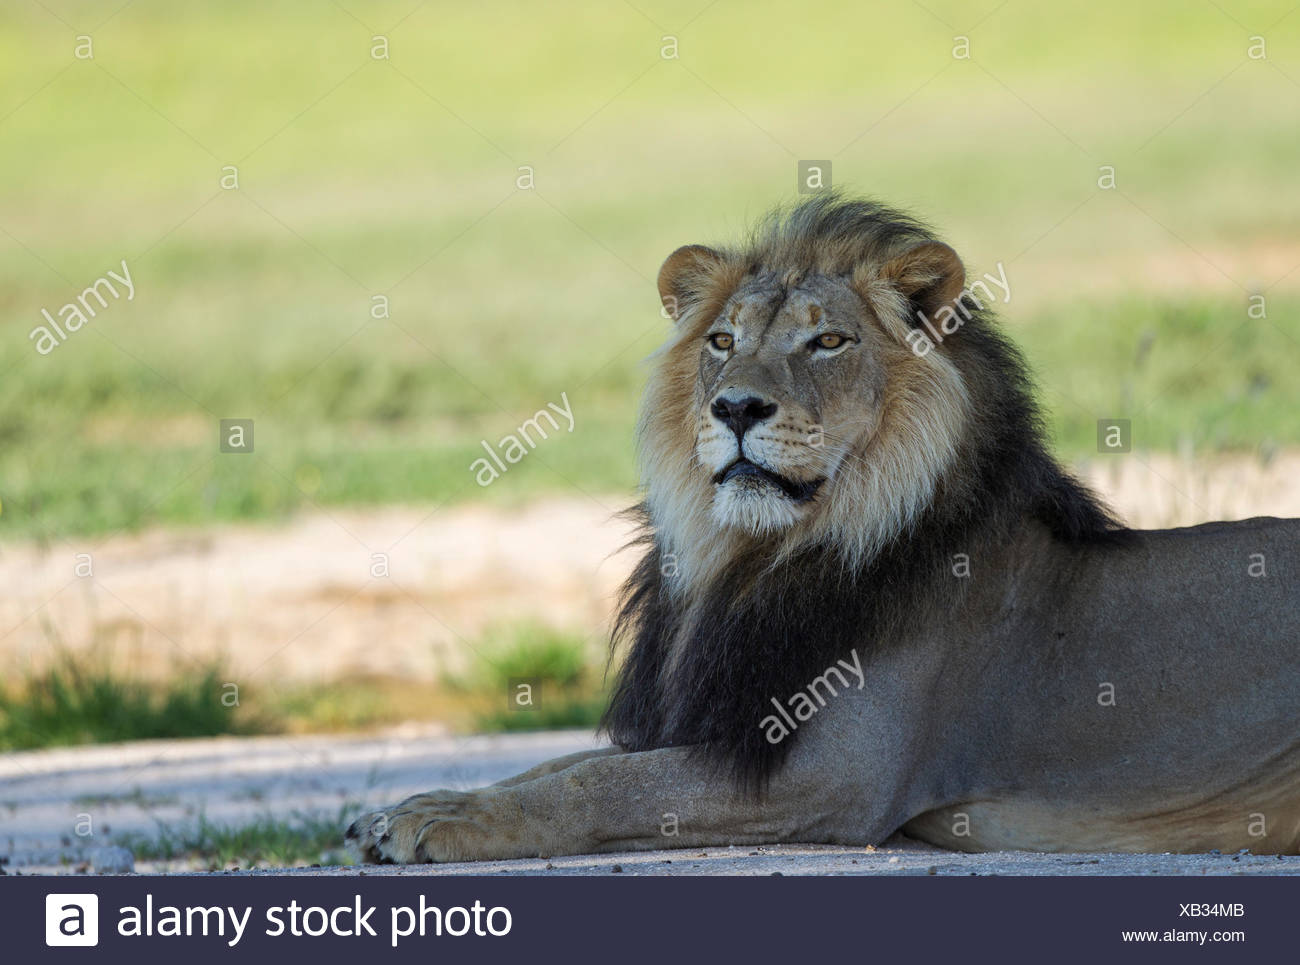 Lion (Panthera leo), black-maned male, resting, rainy season with green surroundings, Kalahari Desert - Stock Image